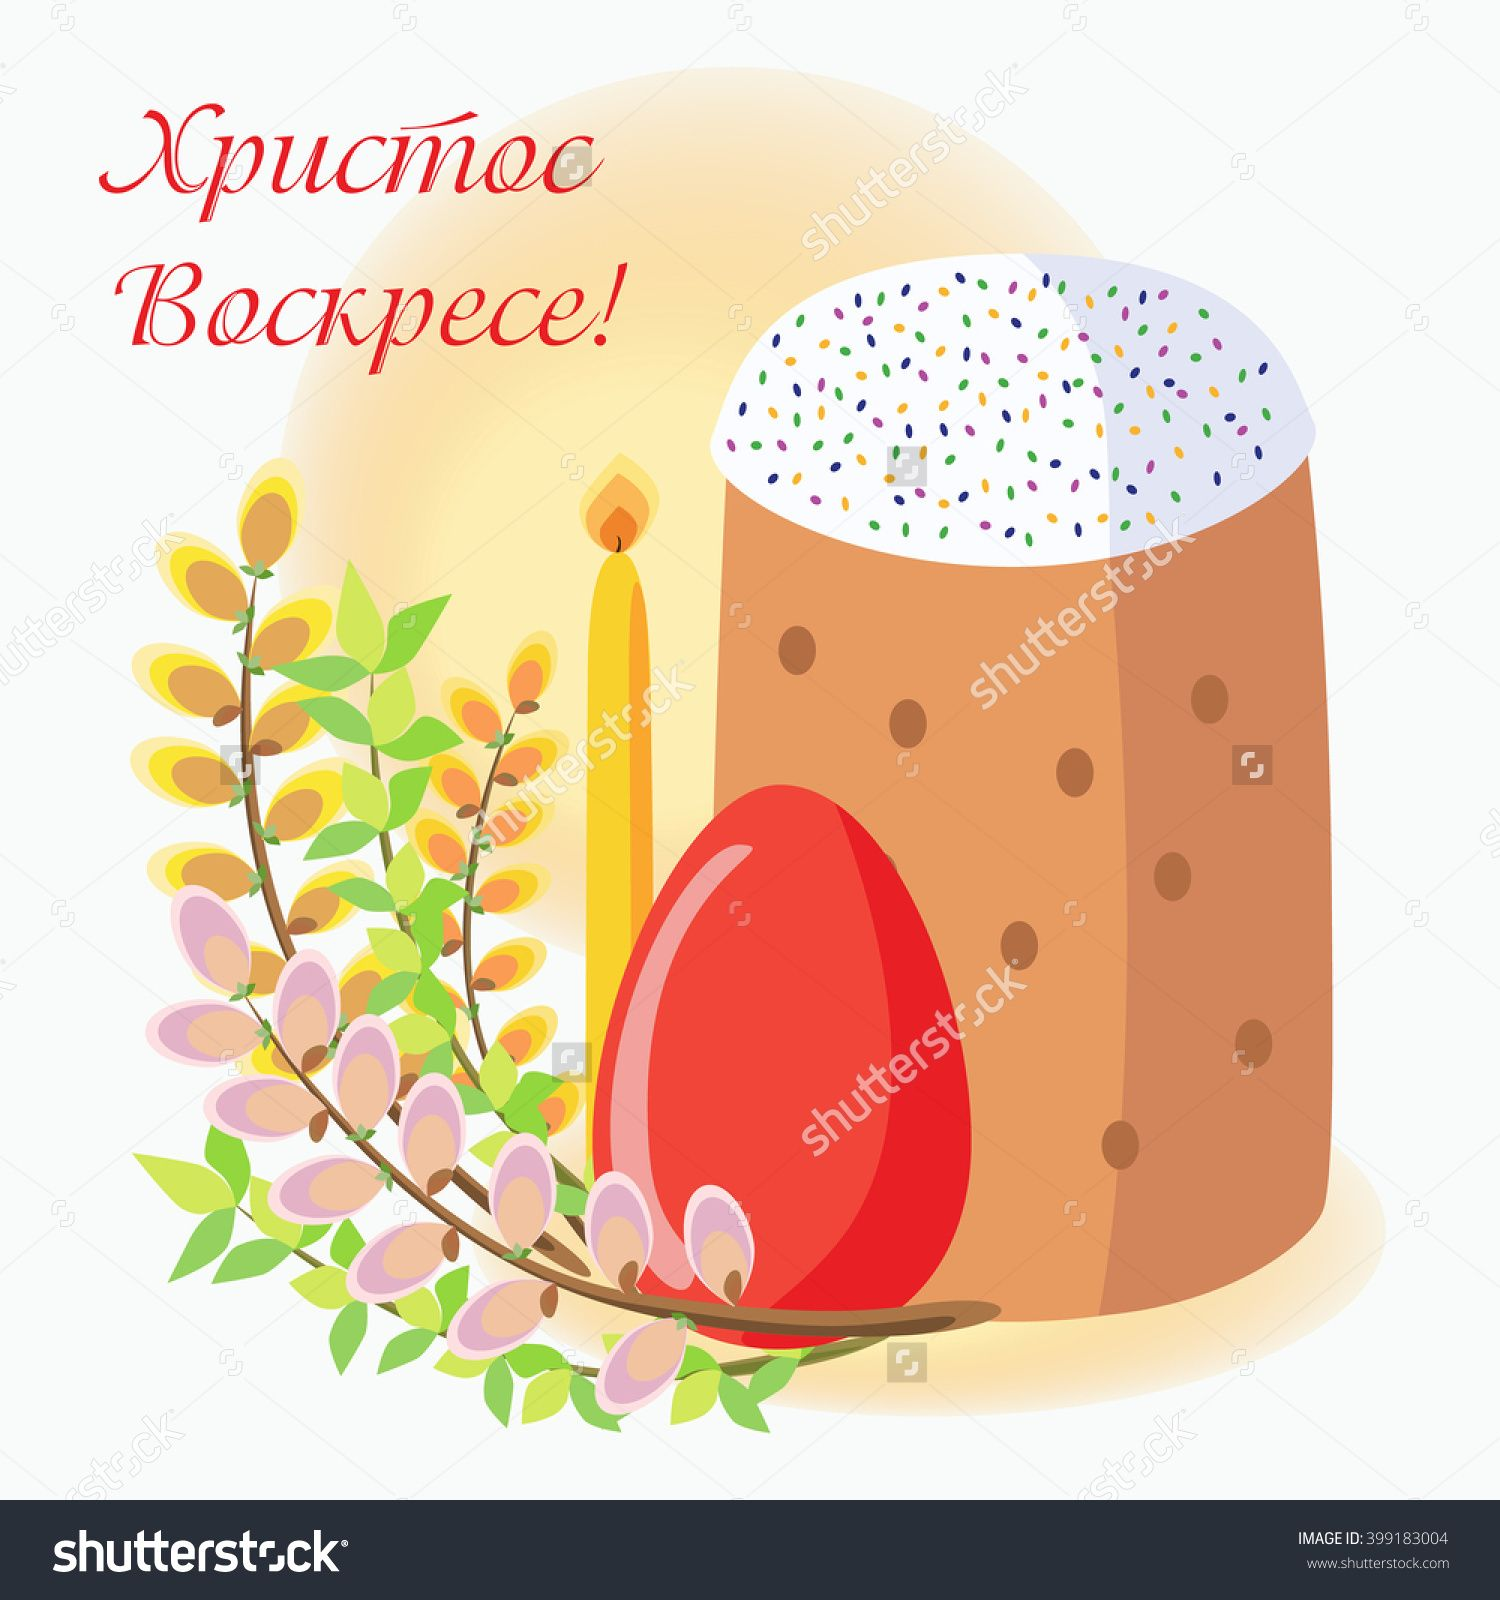 Orthodox Easter Greeting Cards Merry Christmas And Happy New Year 2018